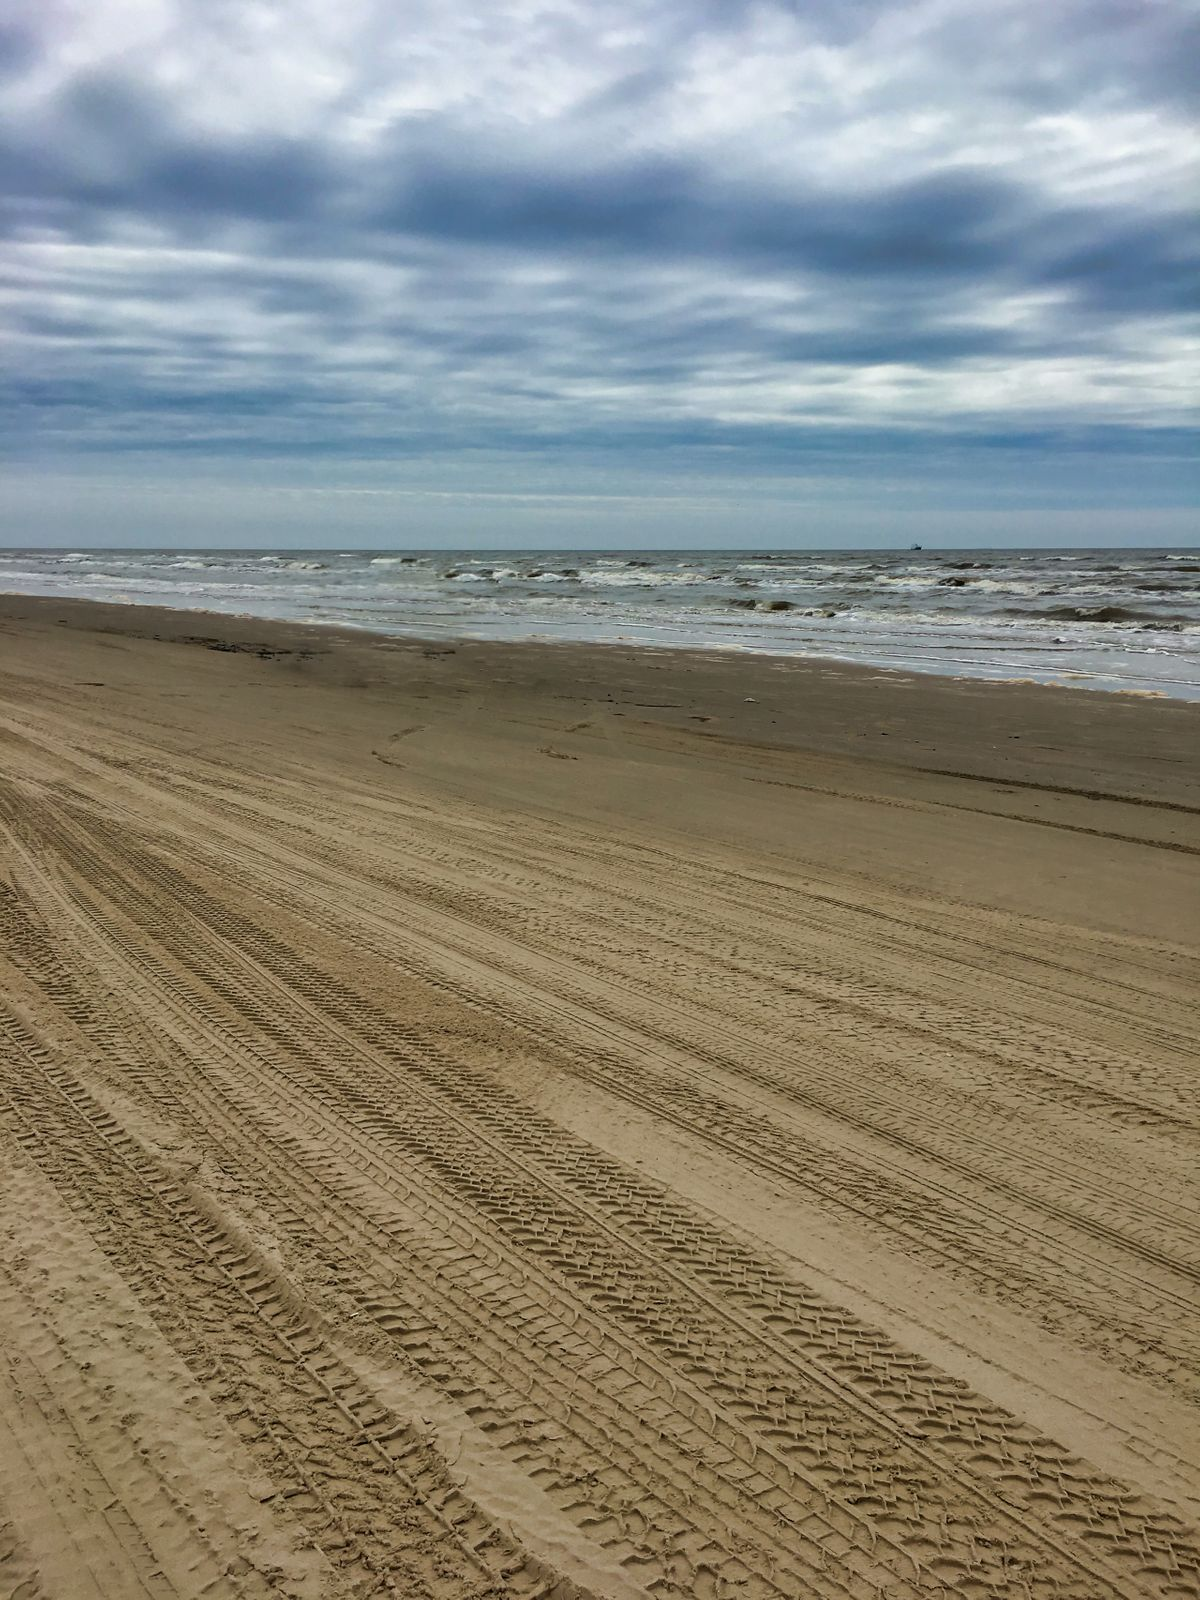 Galveston Beaches Photo Video Shoot Location Dallas41.jpeg